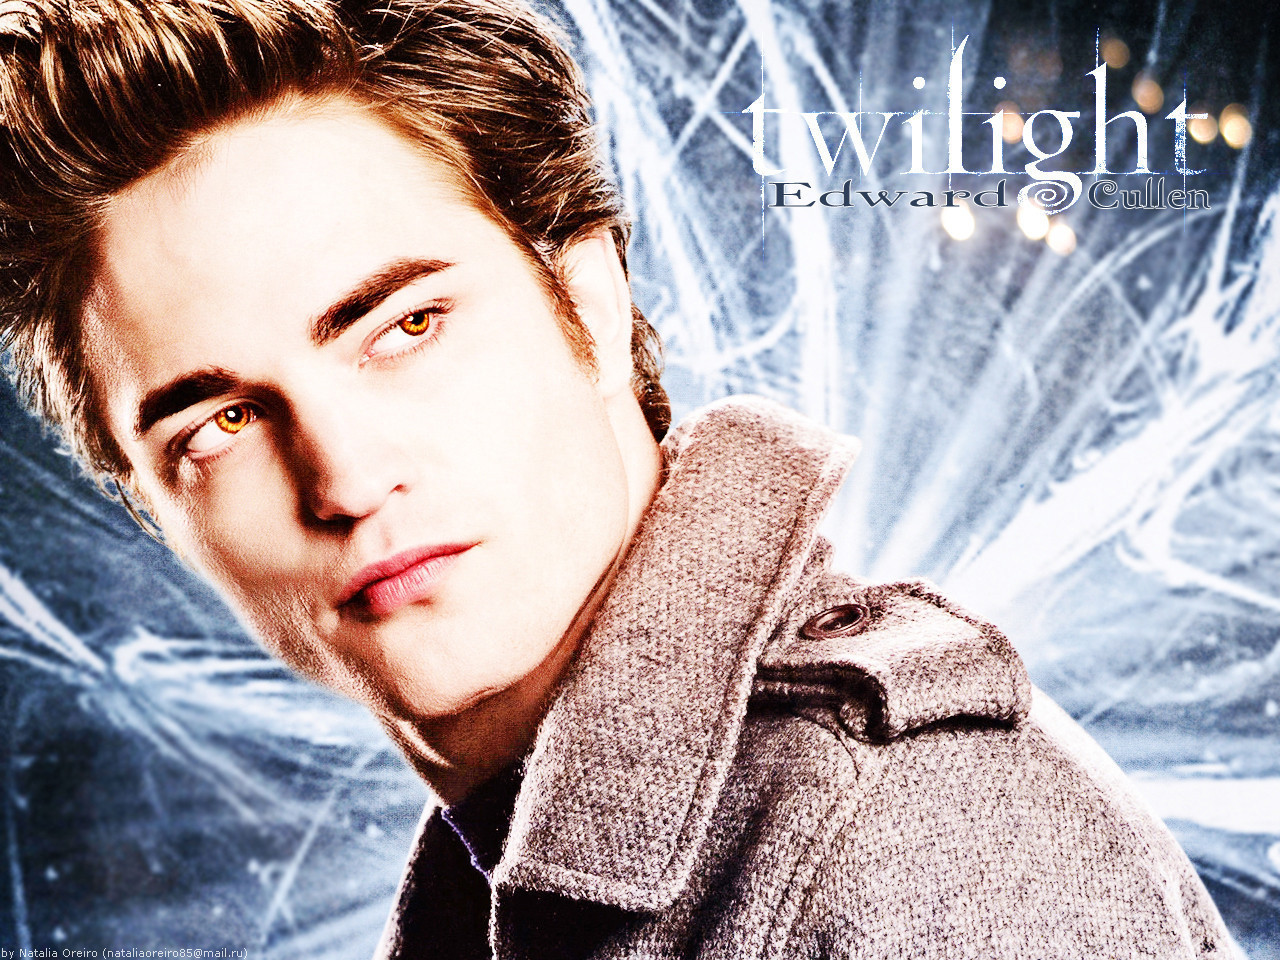 Edward cullen twilight series wallpaper 6700287 fanpop Twilight edward photos